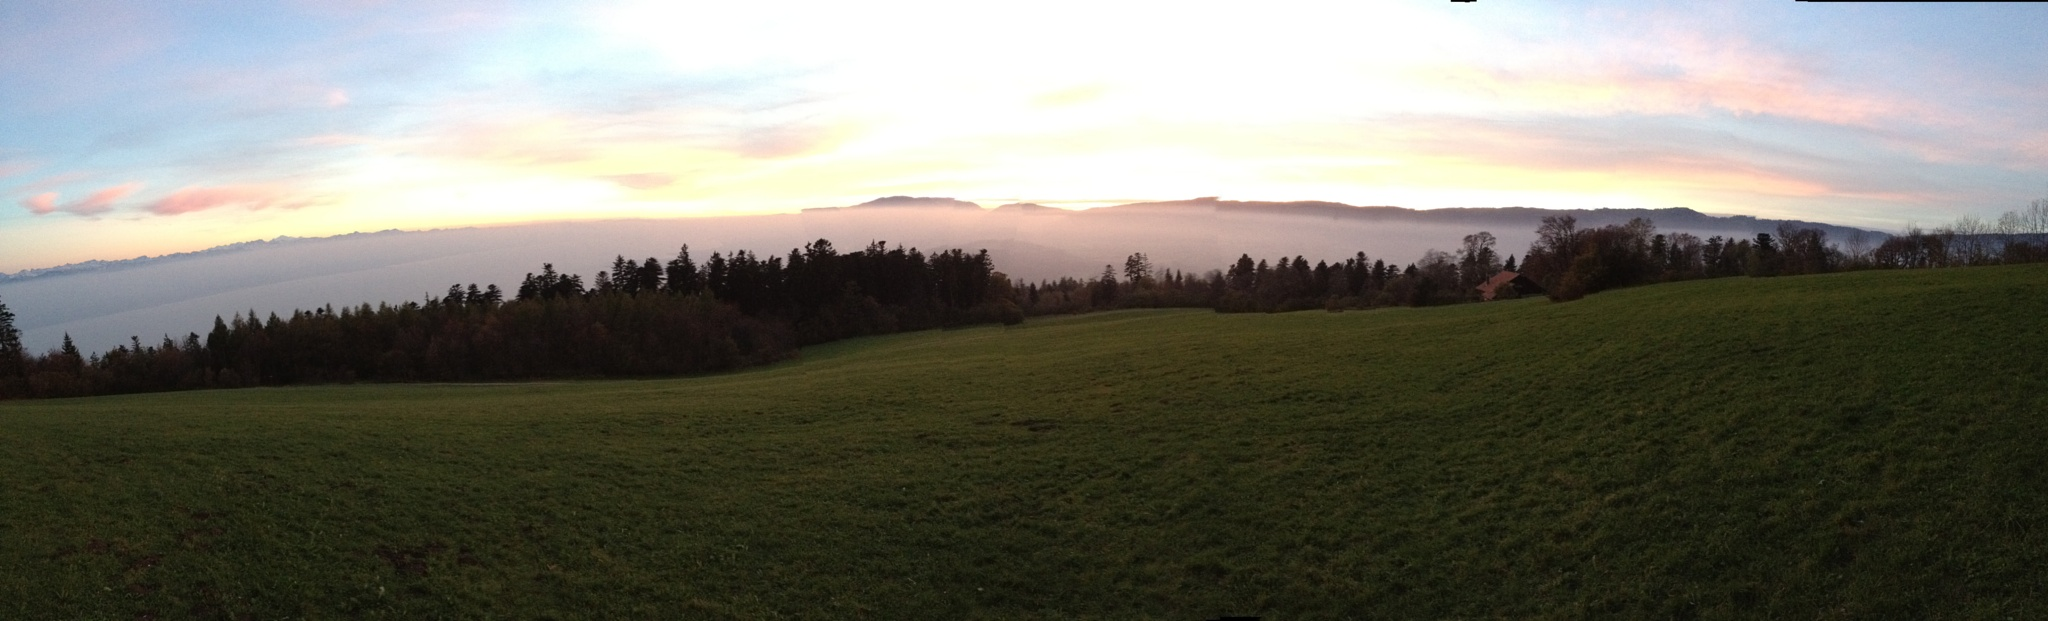 Panorama paysage  by AnneDominique